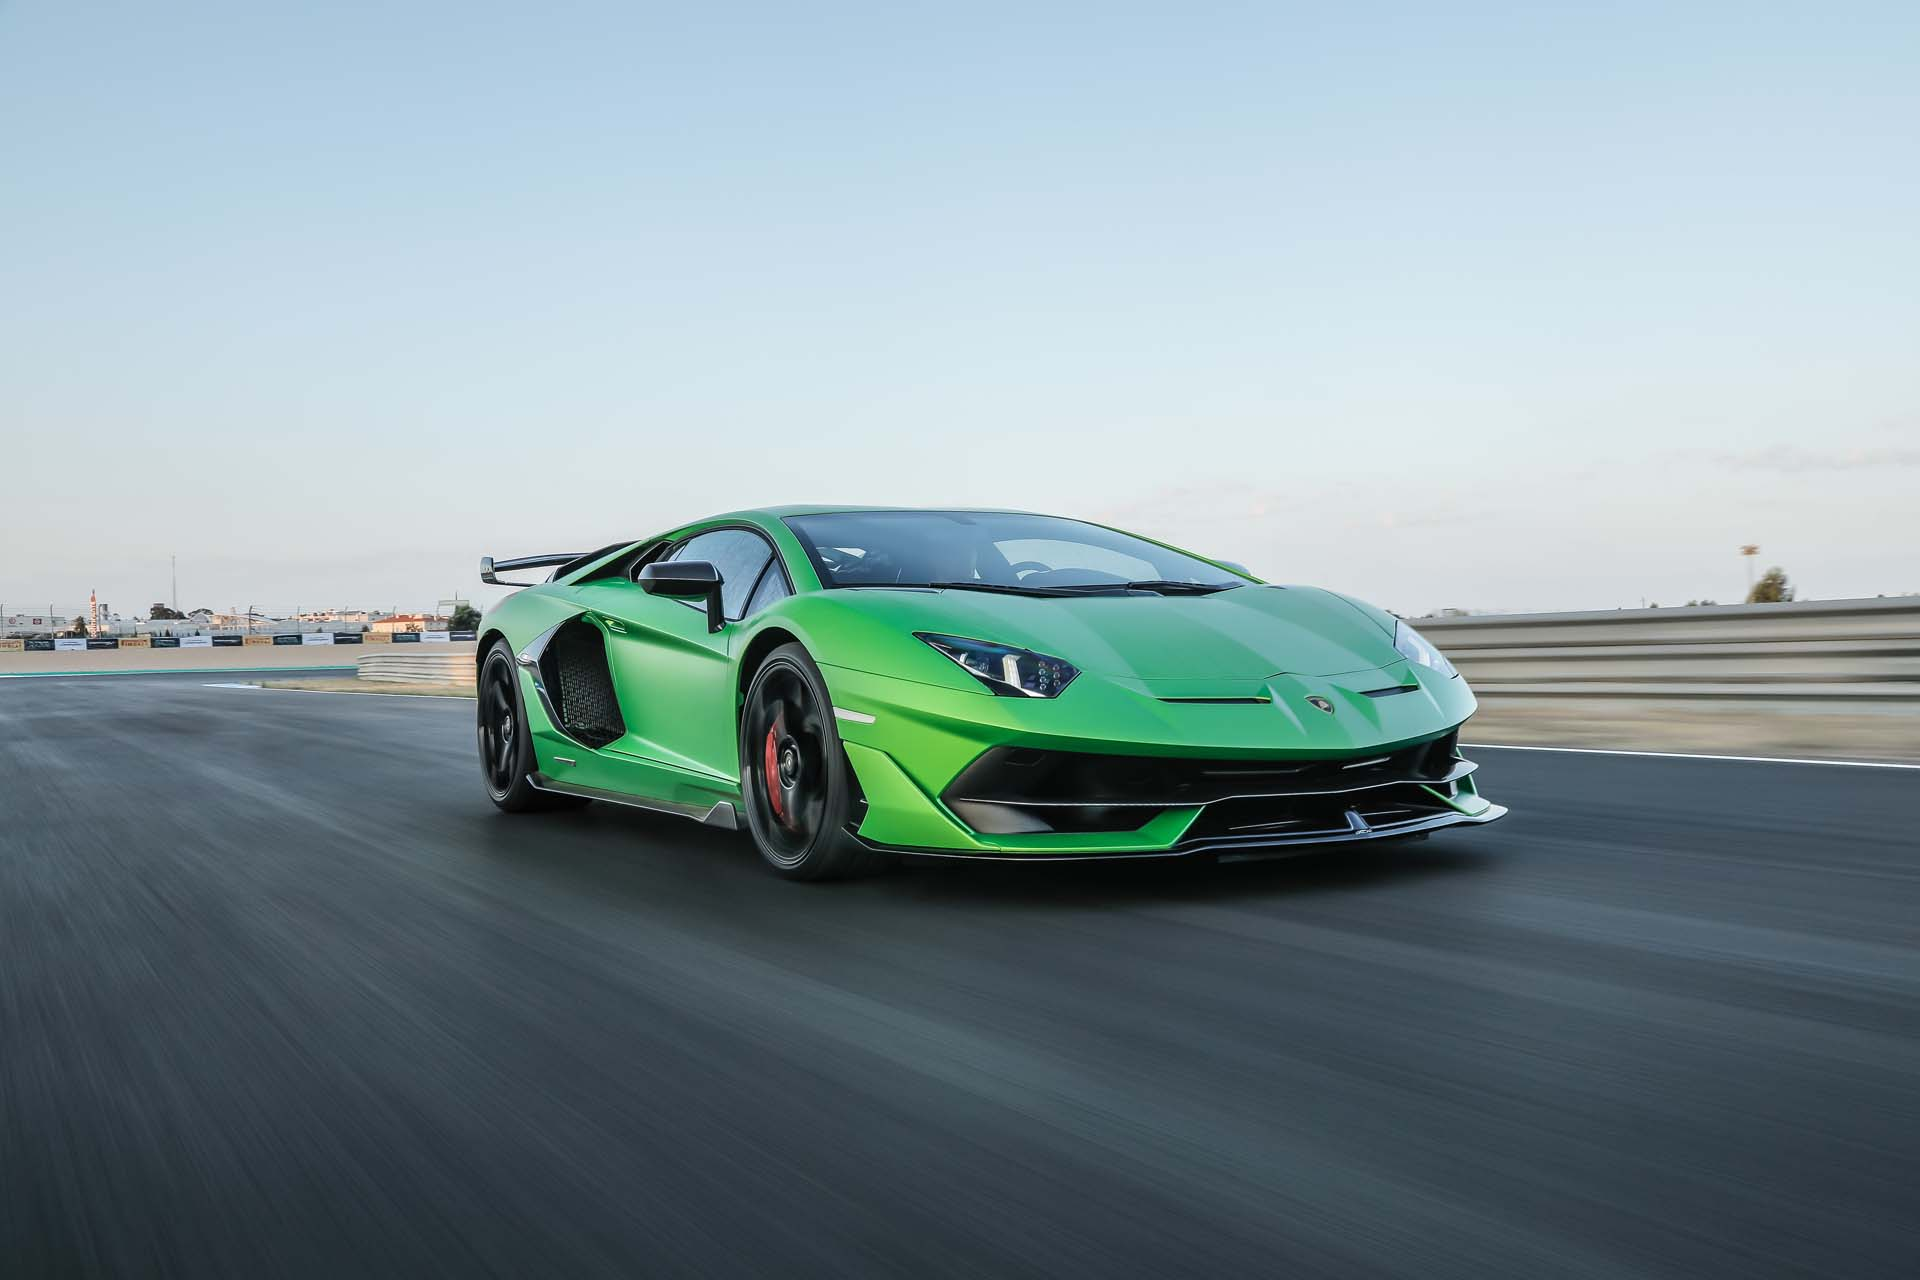 2019 Lamborghini Aventador SVJ Front Three-Quarter Wallpapers #1 of 241